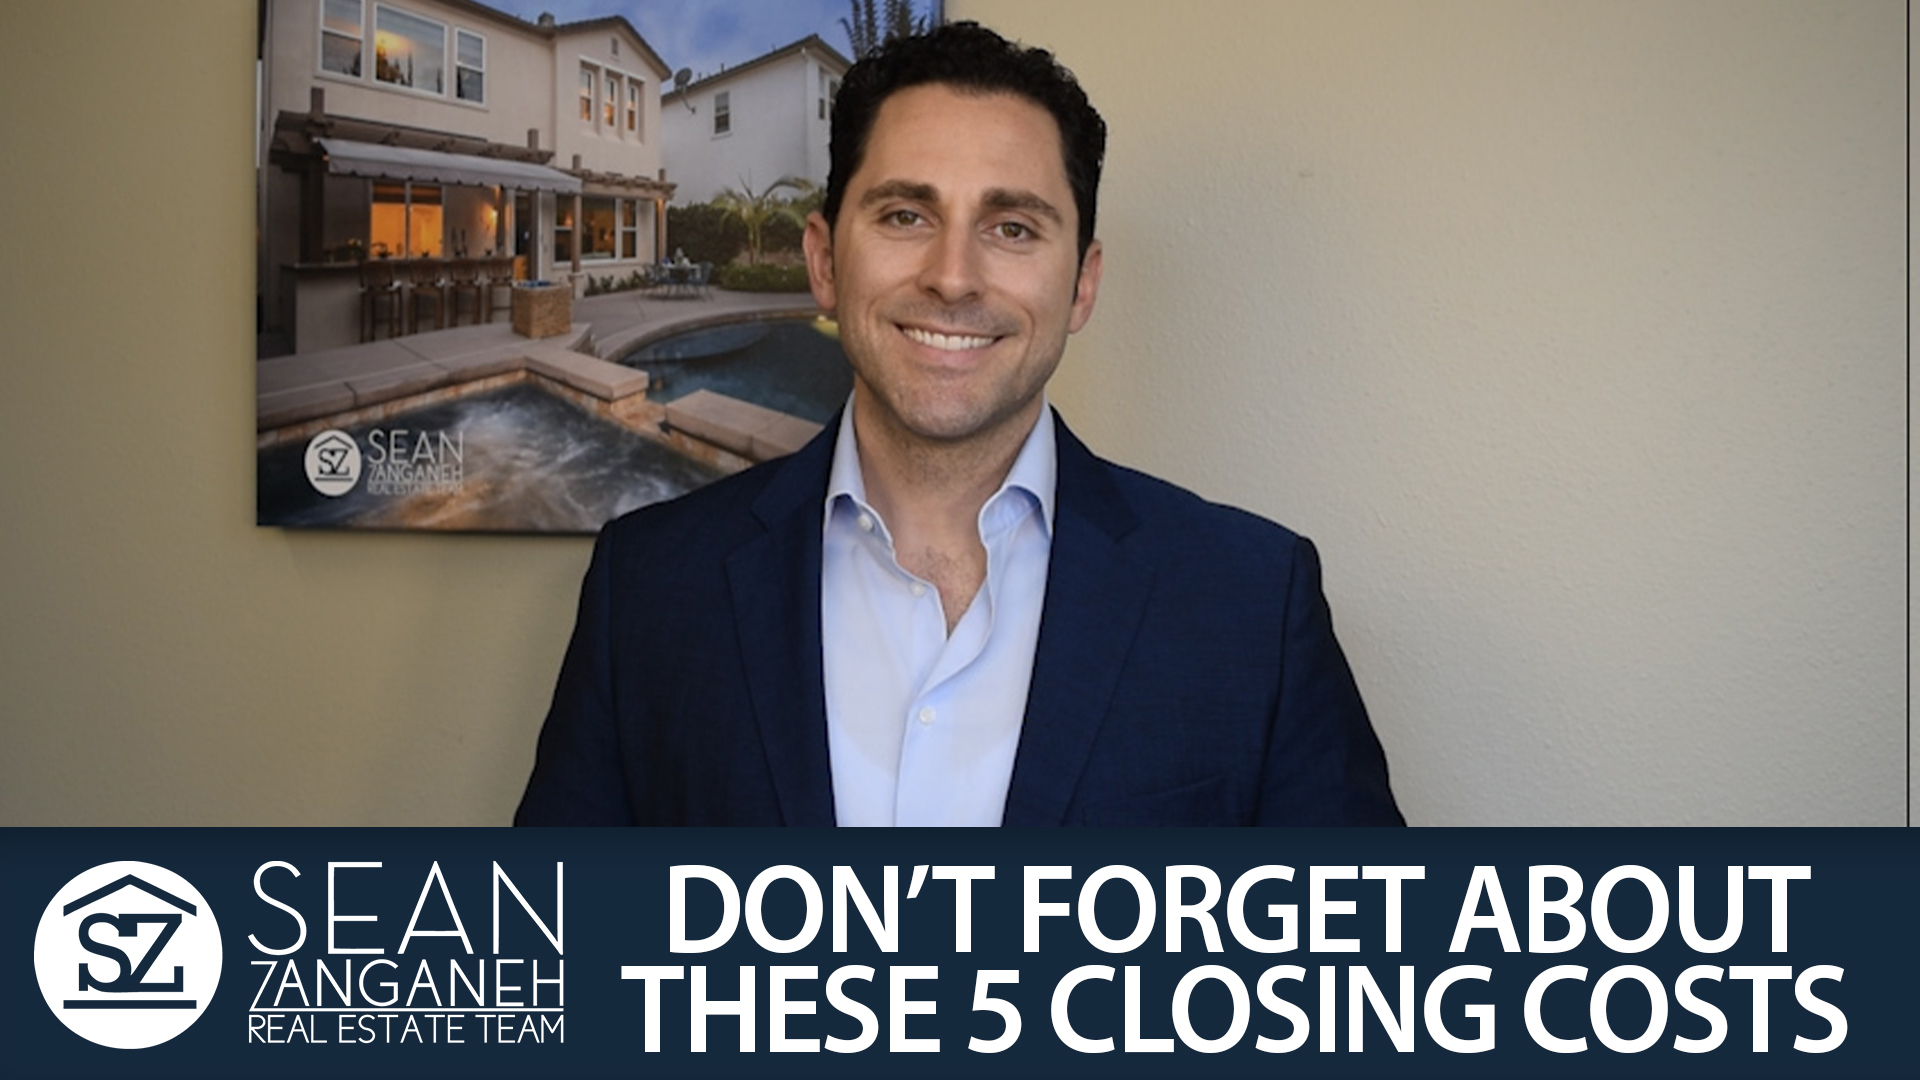 Sean Zanganeh Real Estate Video Blog